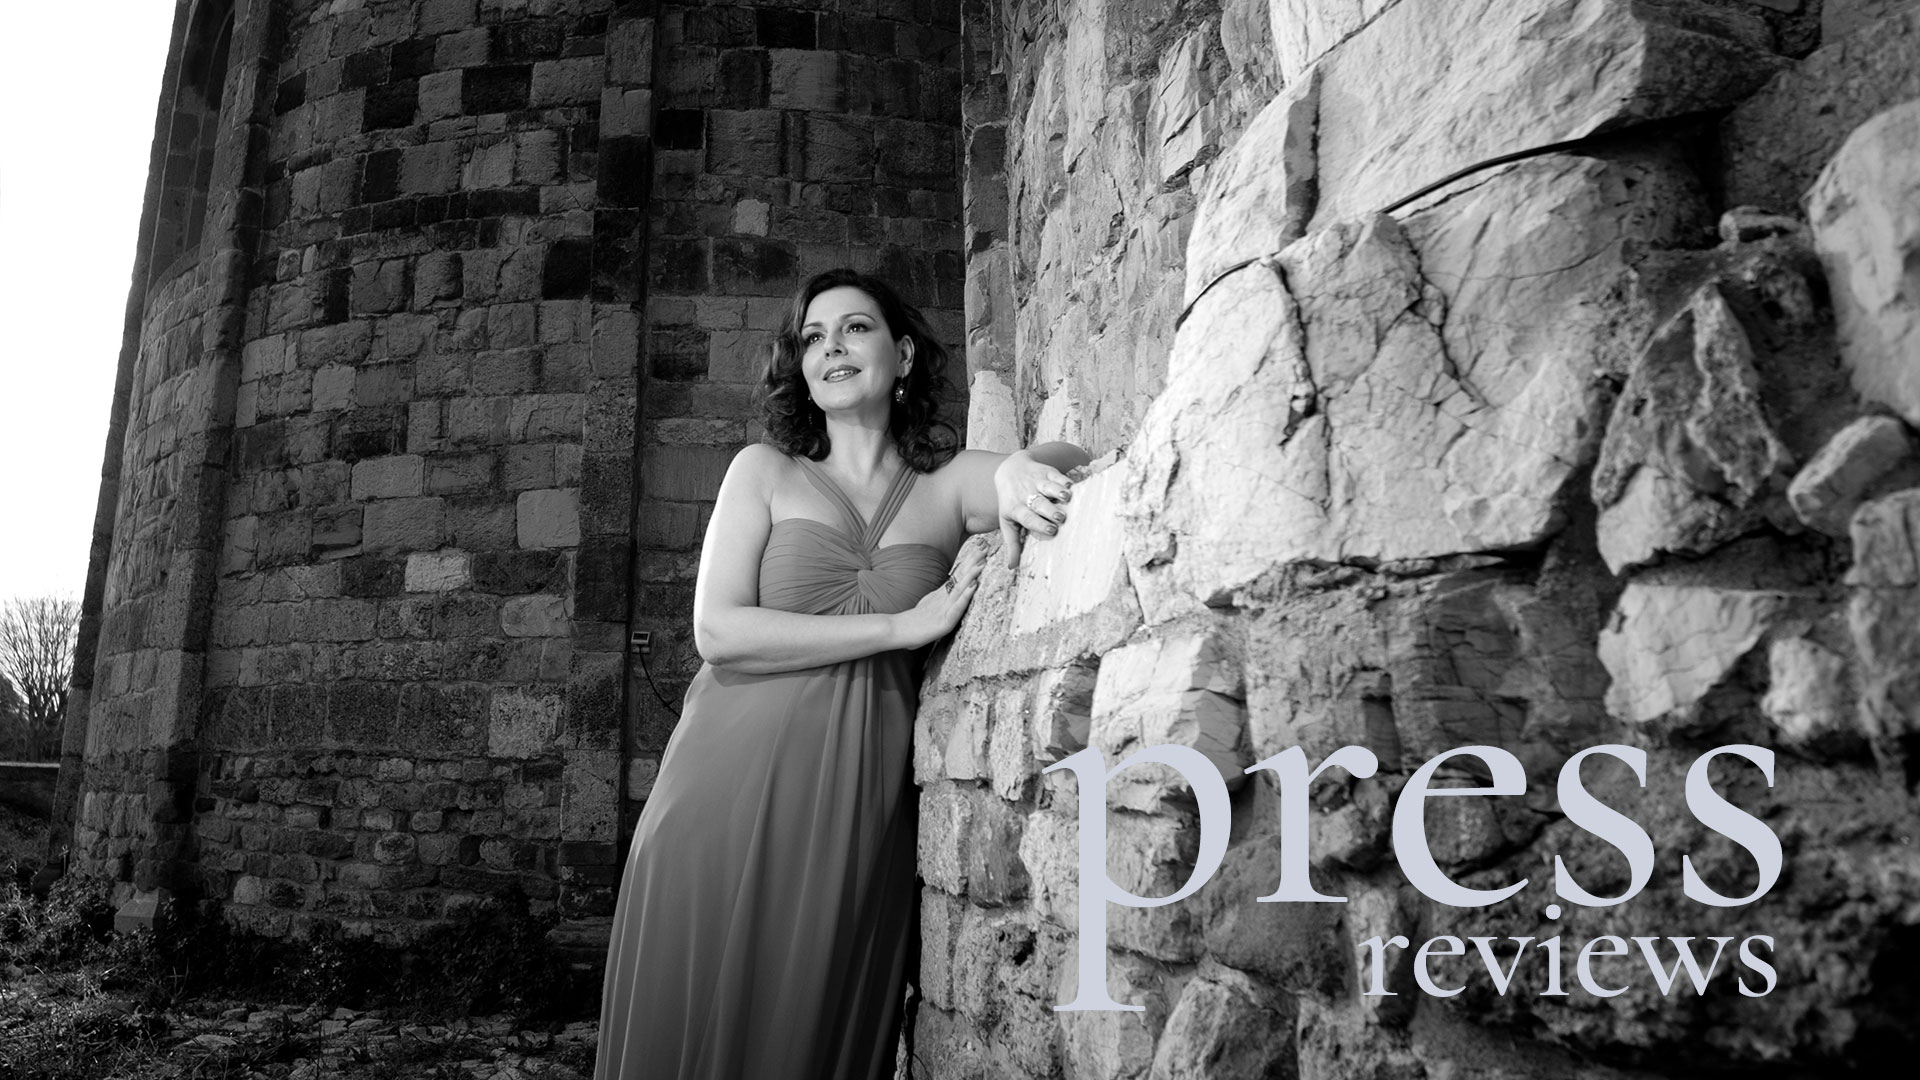 Press Reviews - Alexia Voulgaridou - Soprano